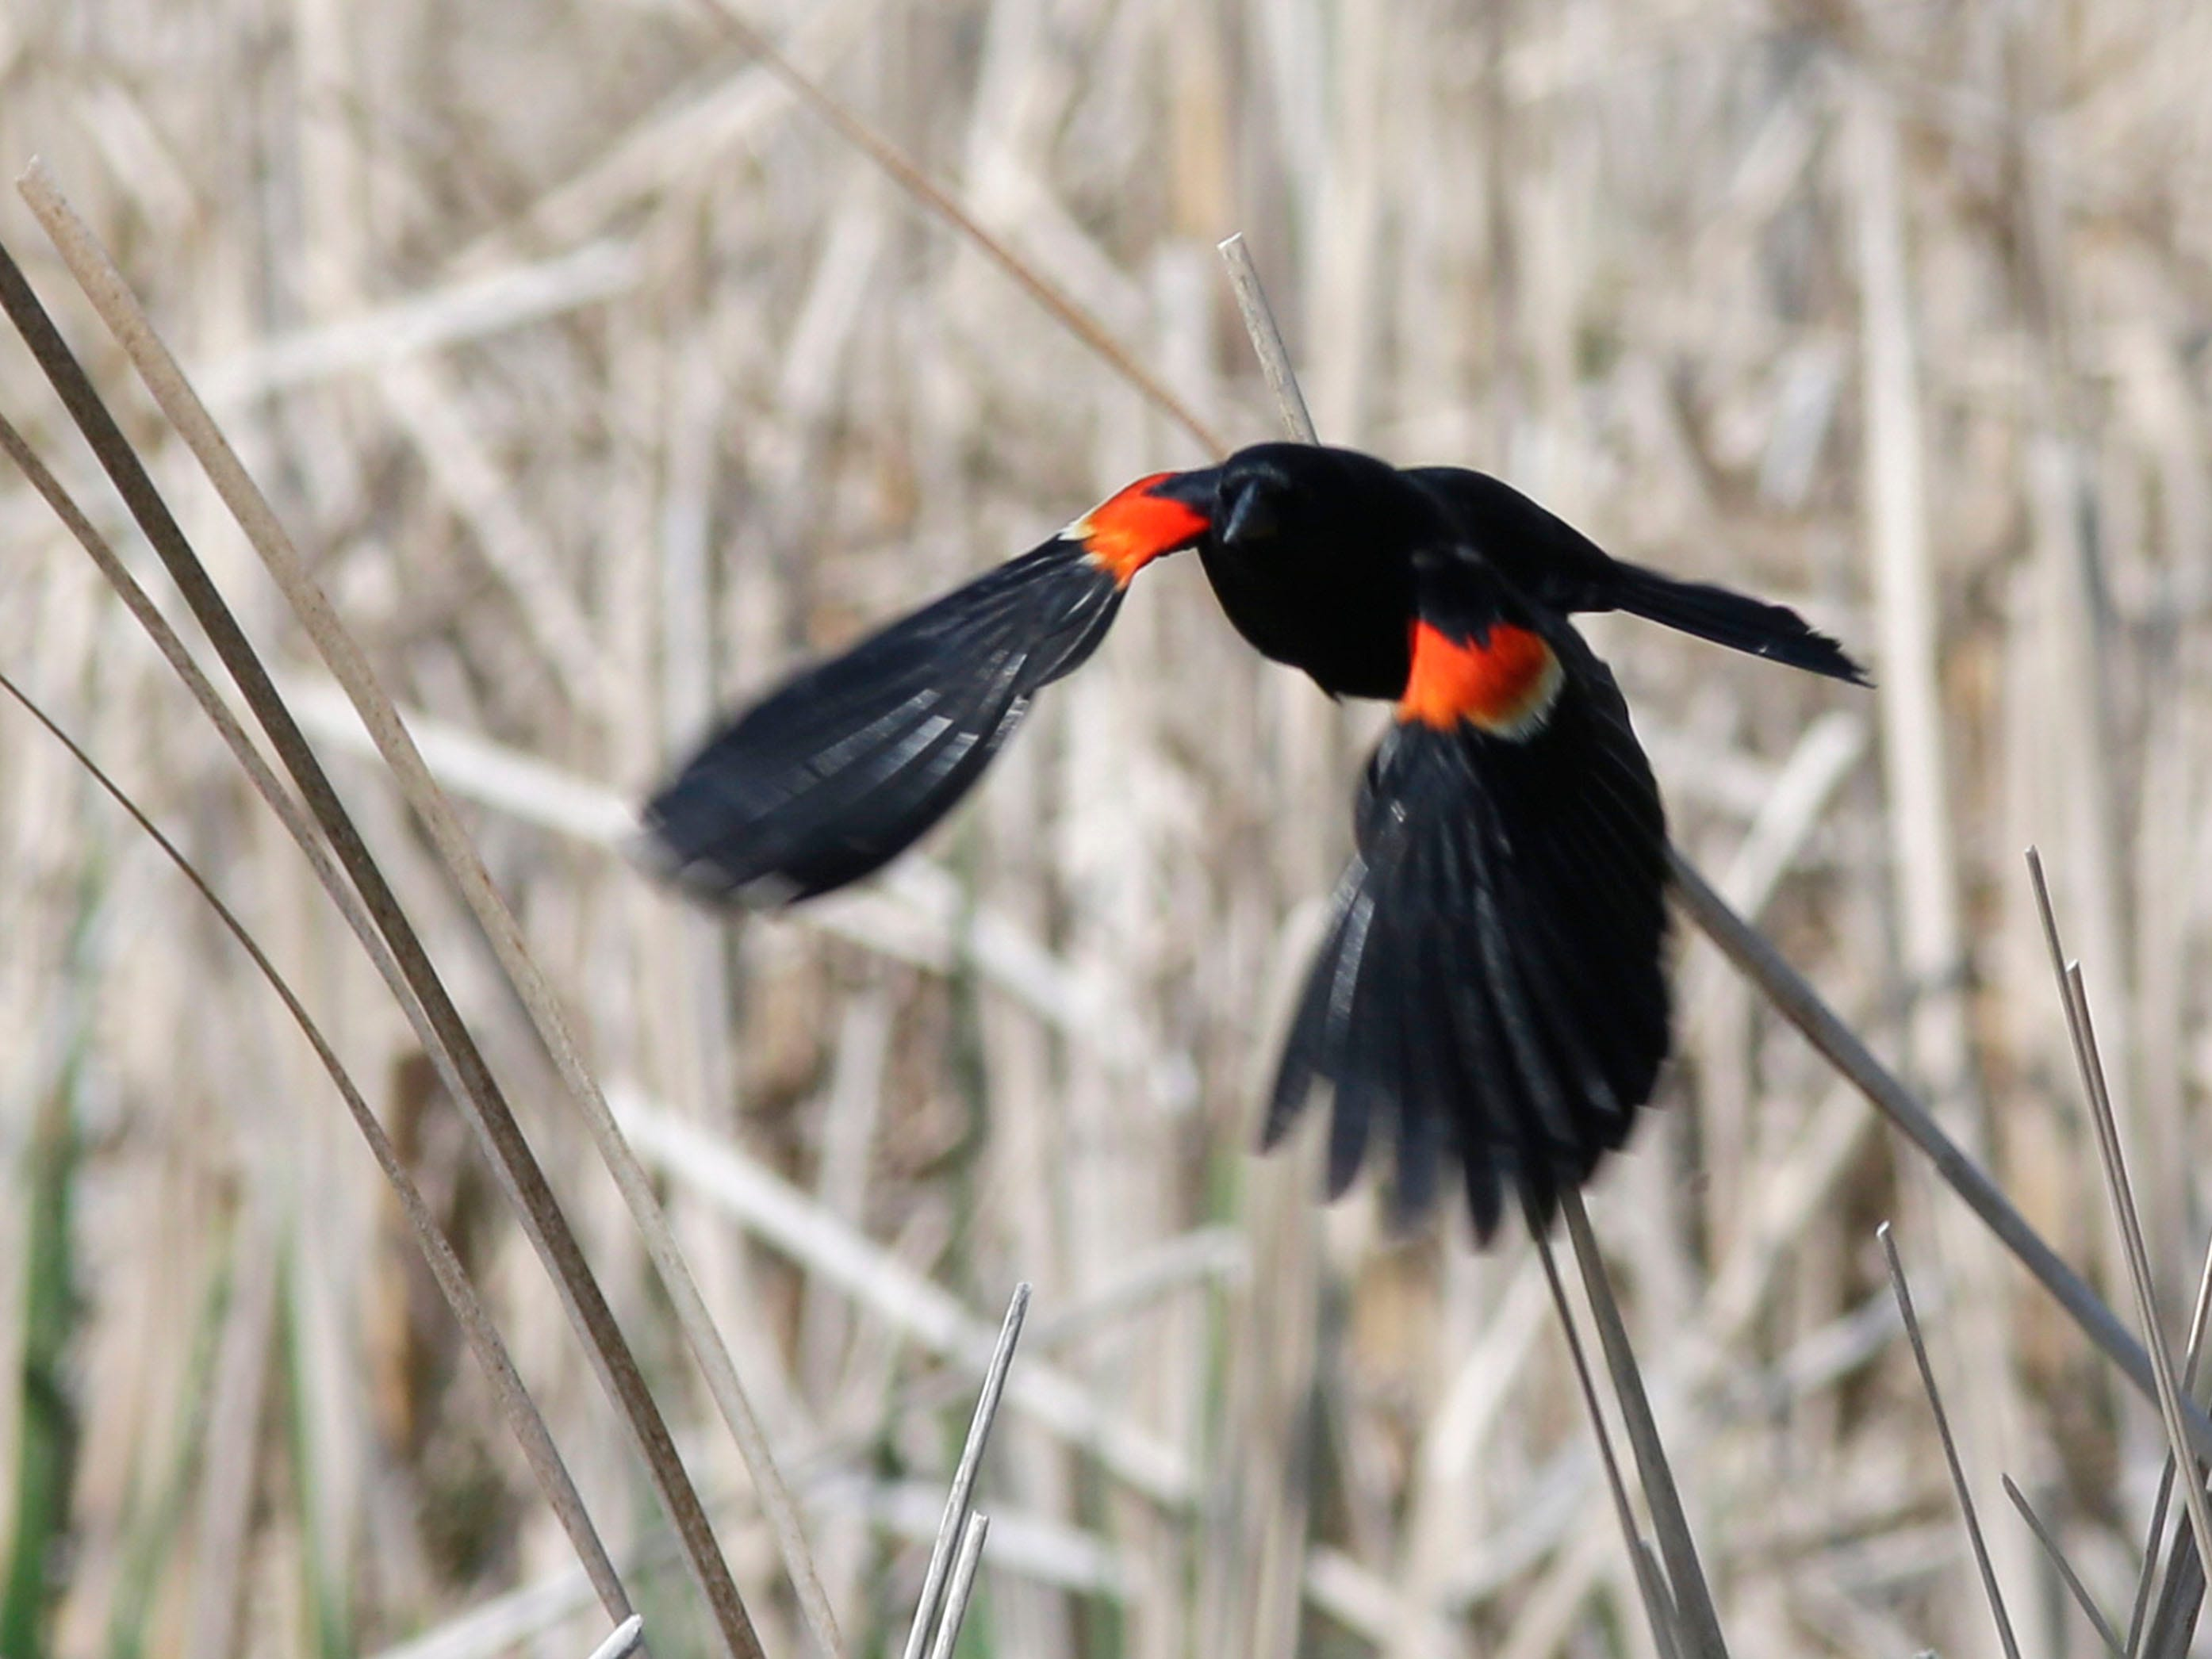 A red winged blackbird swoops near the edge of Broughton Marsh Park, Thursday, May 17, 2018, in Elkhart Lake, Wis.